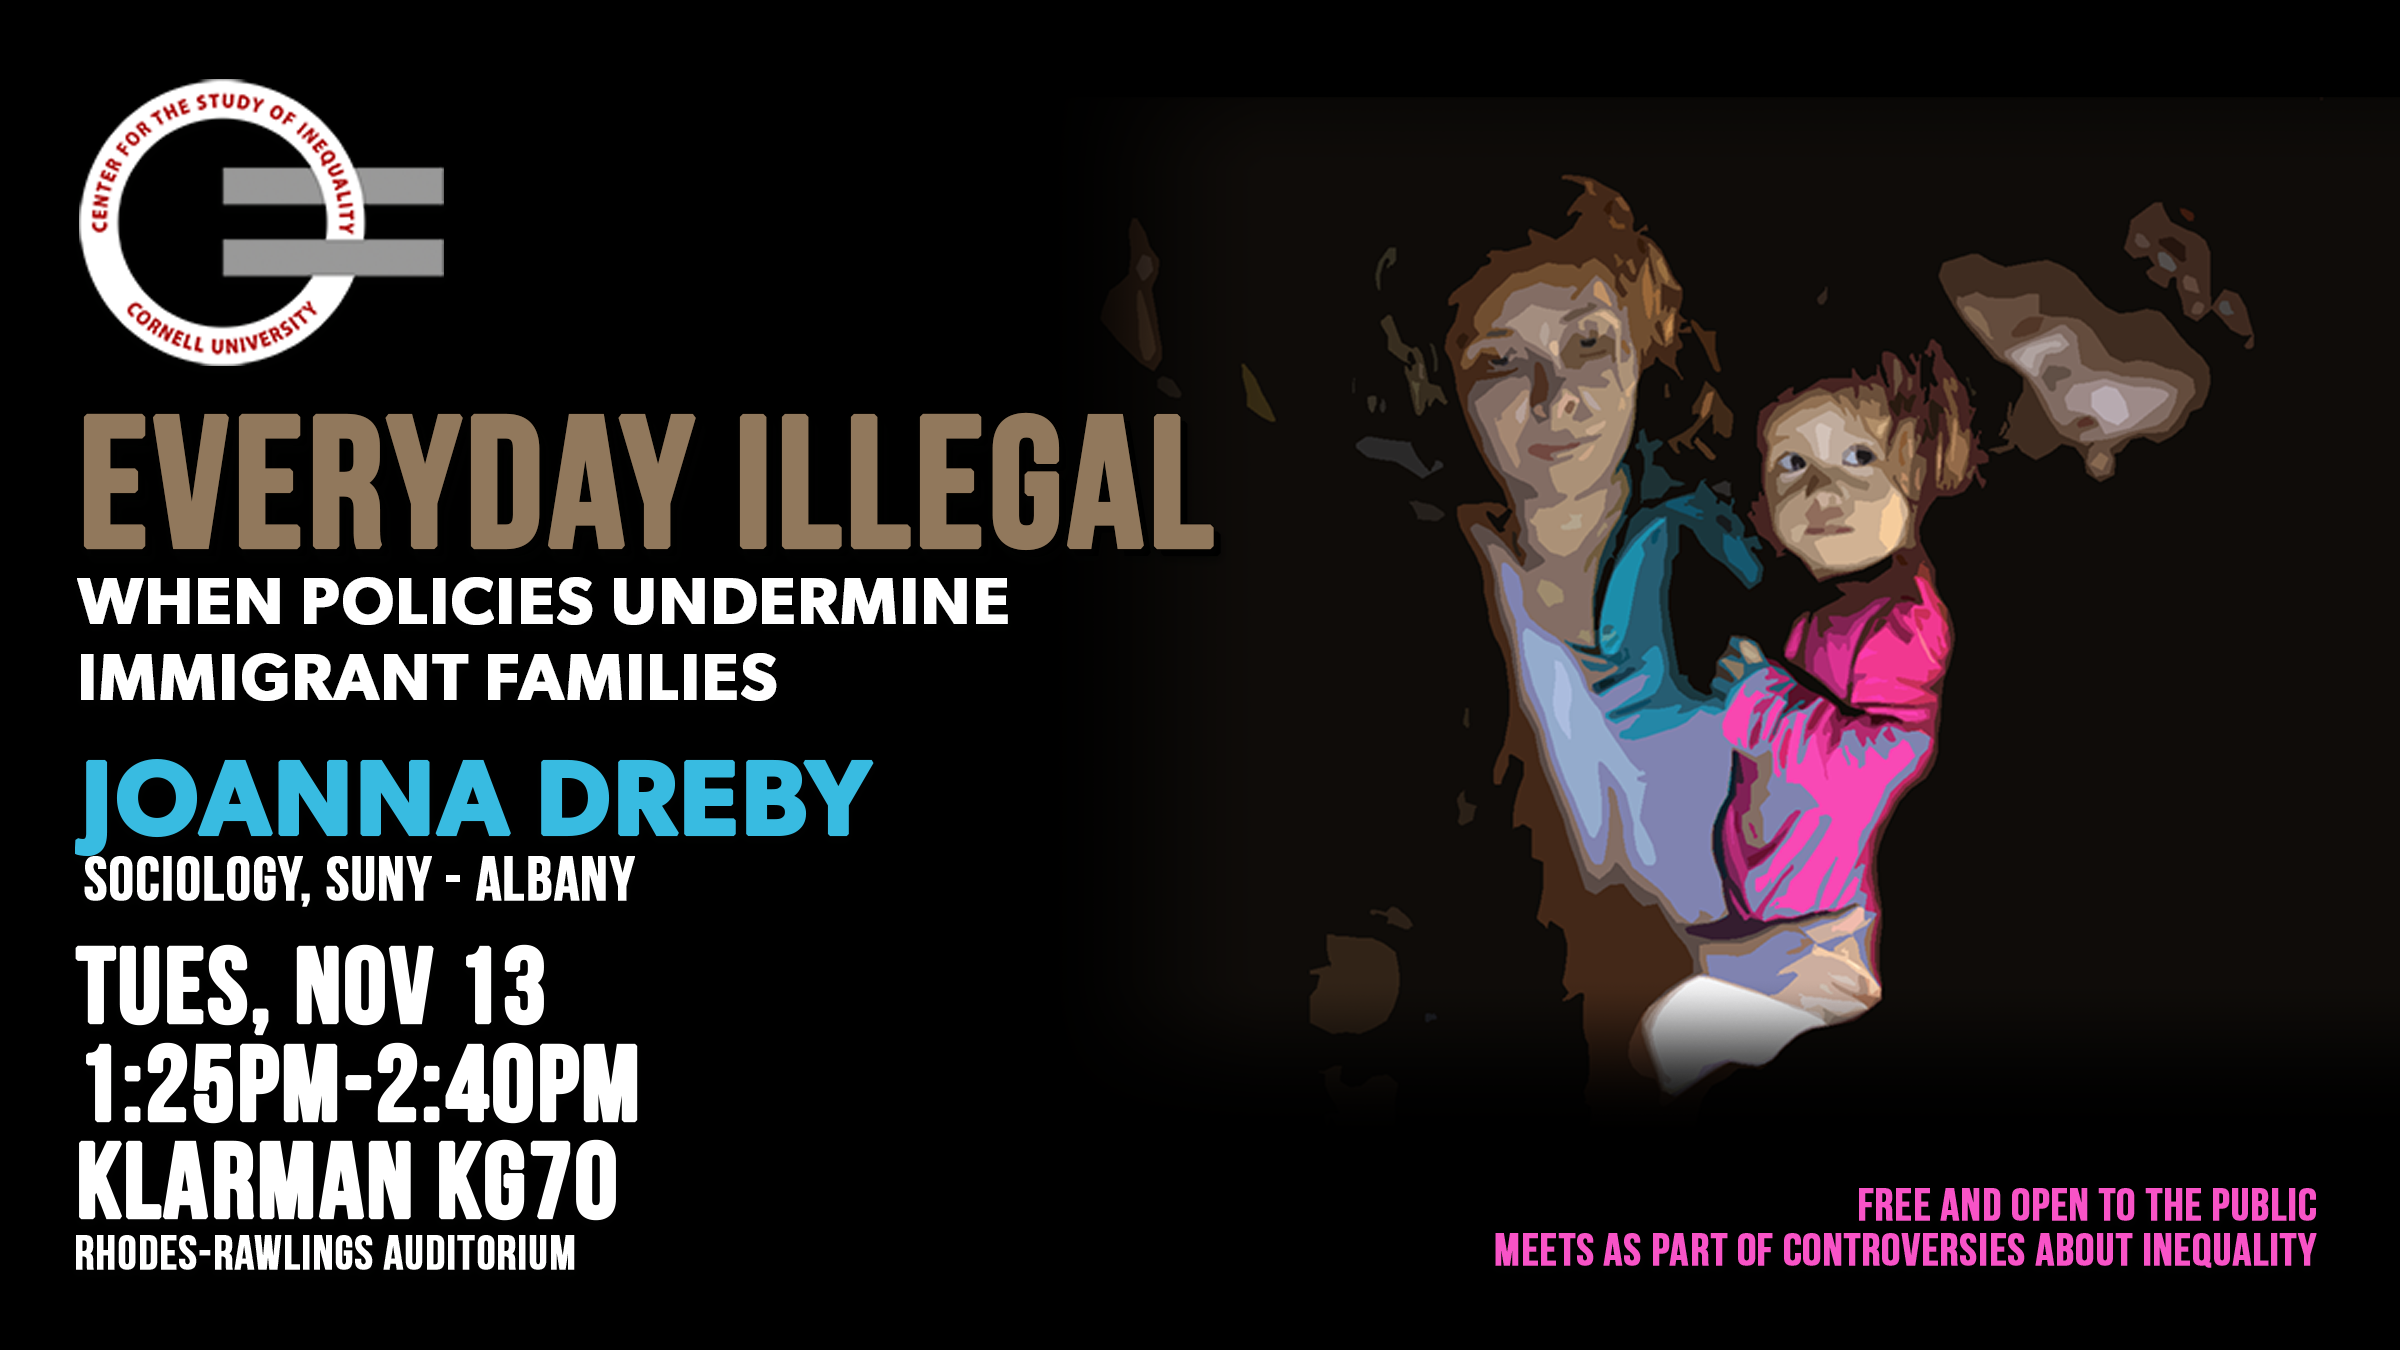 Joanna Dreby - Everyday Illegal: When Policies Undermind Immigrant Families